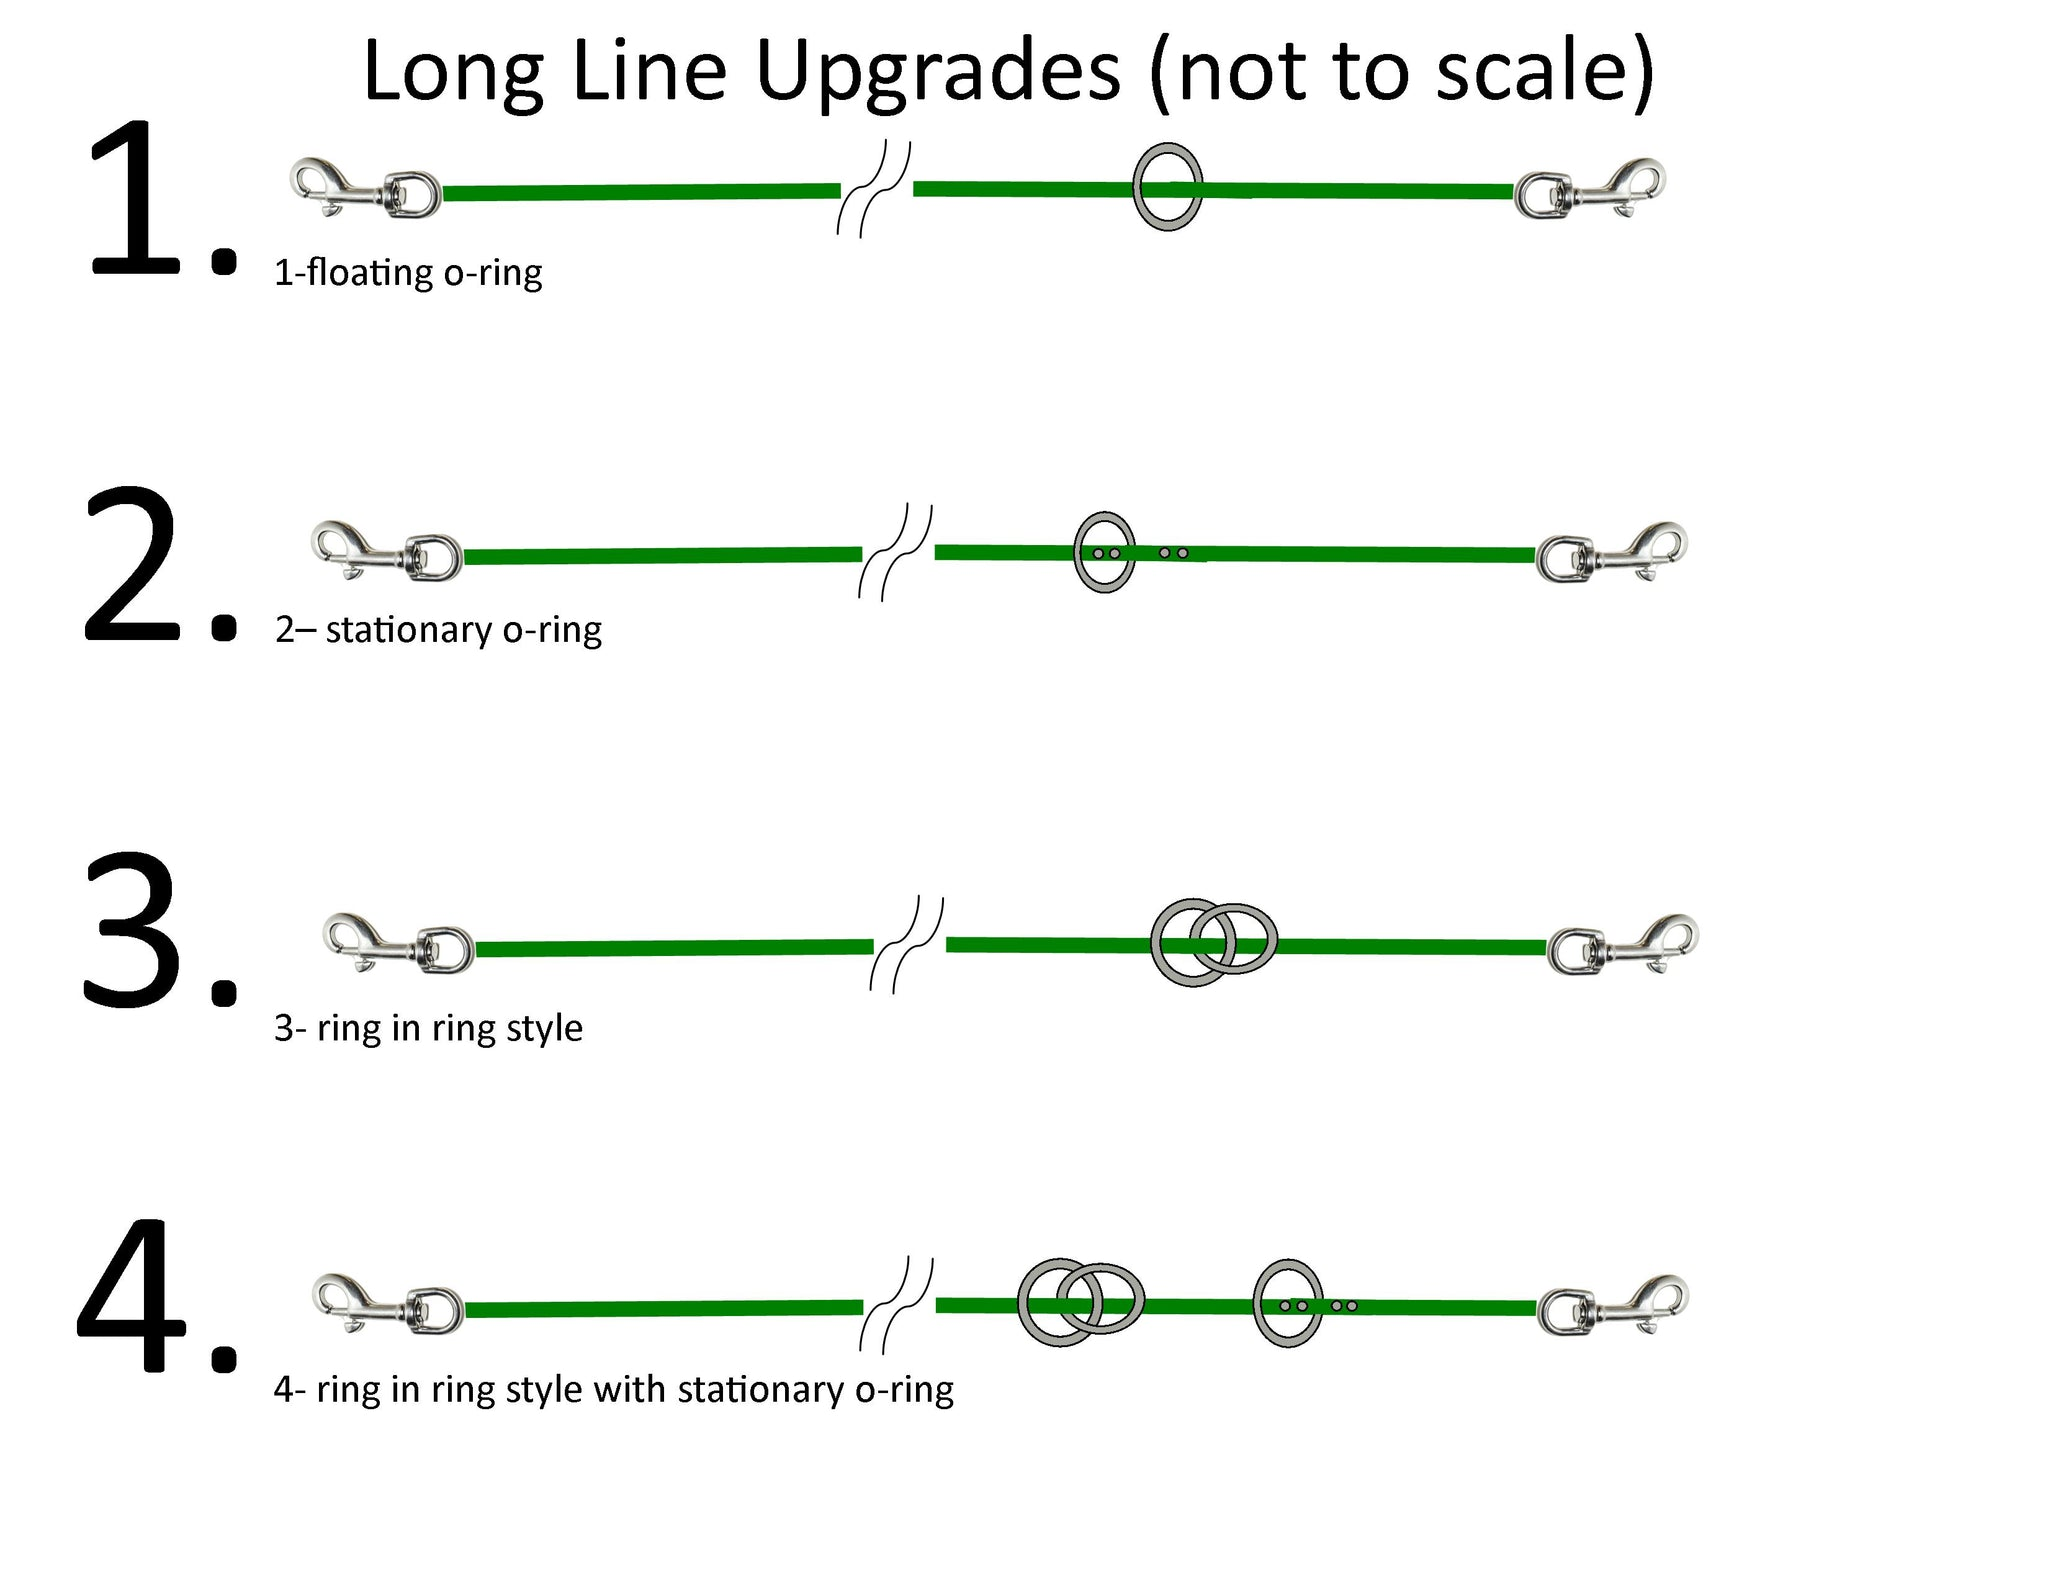 Special Upgrade for long line